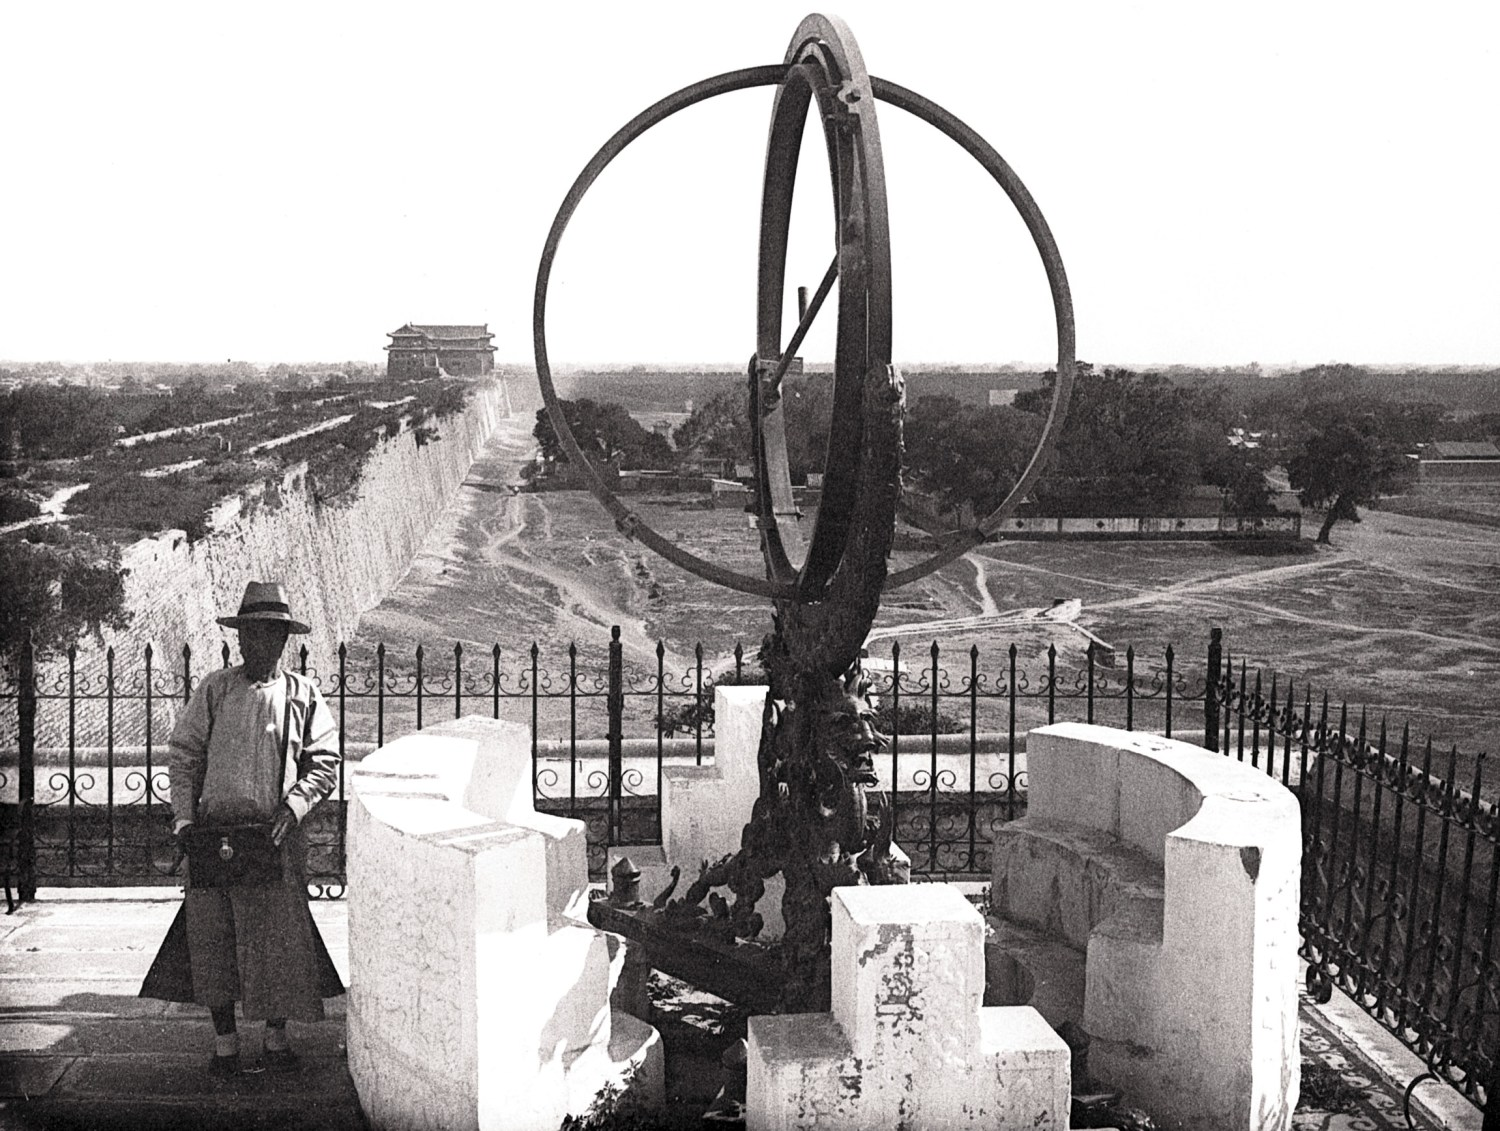 opposite Bi disc, Liangzhu culture, c.3300-2200 BC. Size: 38.8cm below Ferdinand Verbiest's 1673 armillary sphere in situ at the Beijing observatory. The photograph, from 1909, is by Joseph Rastoul.